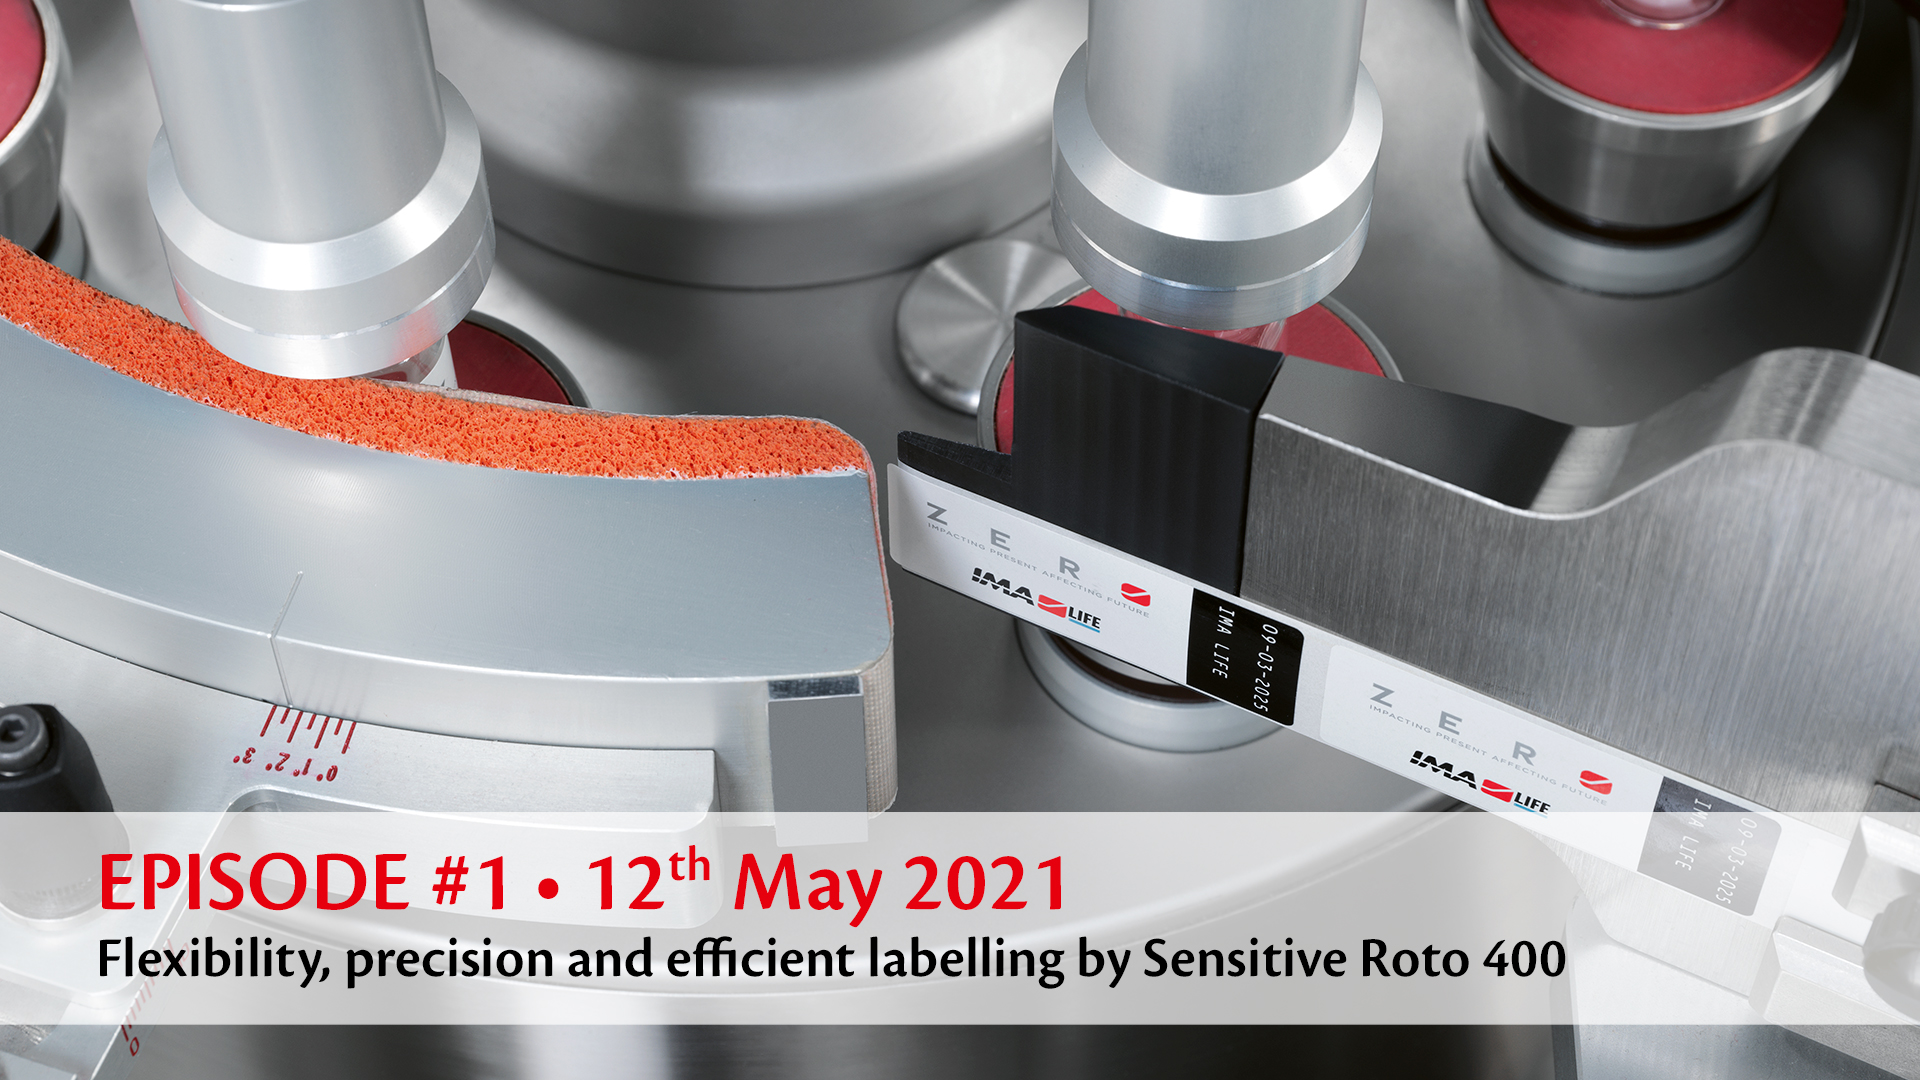 EPISODE #1 • Flexibility, precision and efficient labelling by Sensitive Roto 400